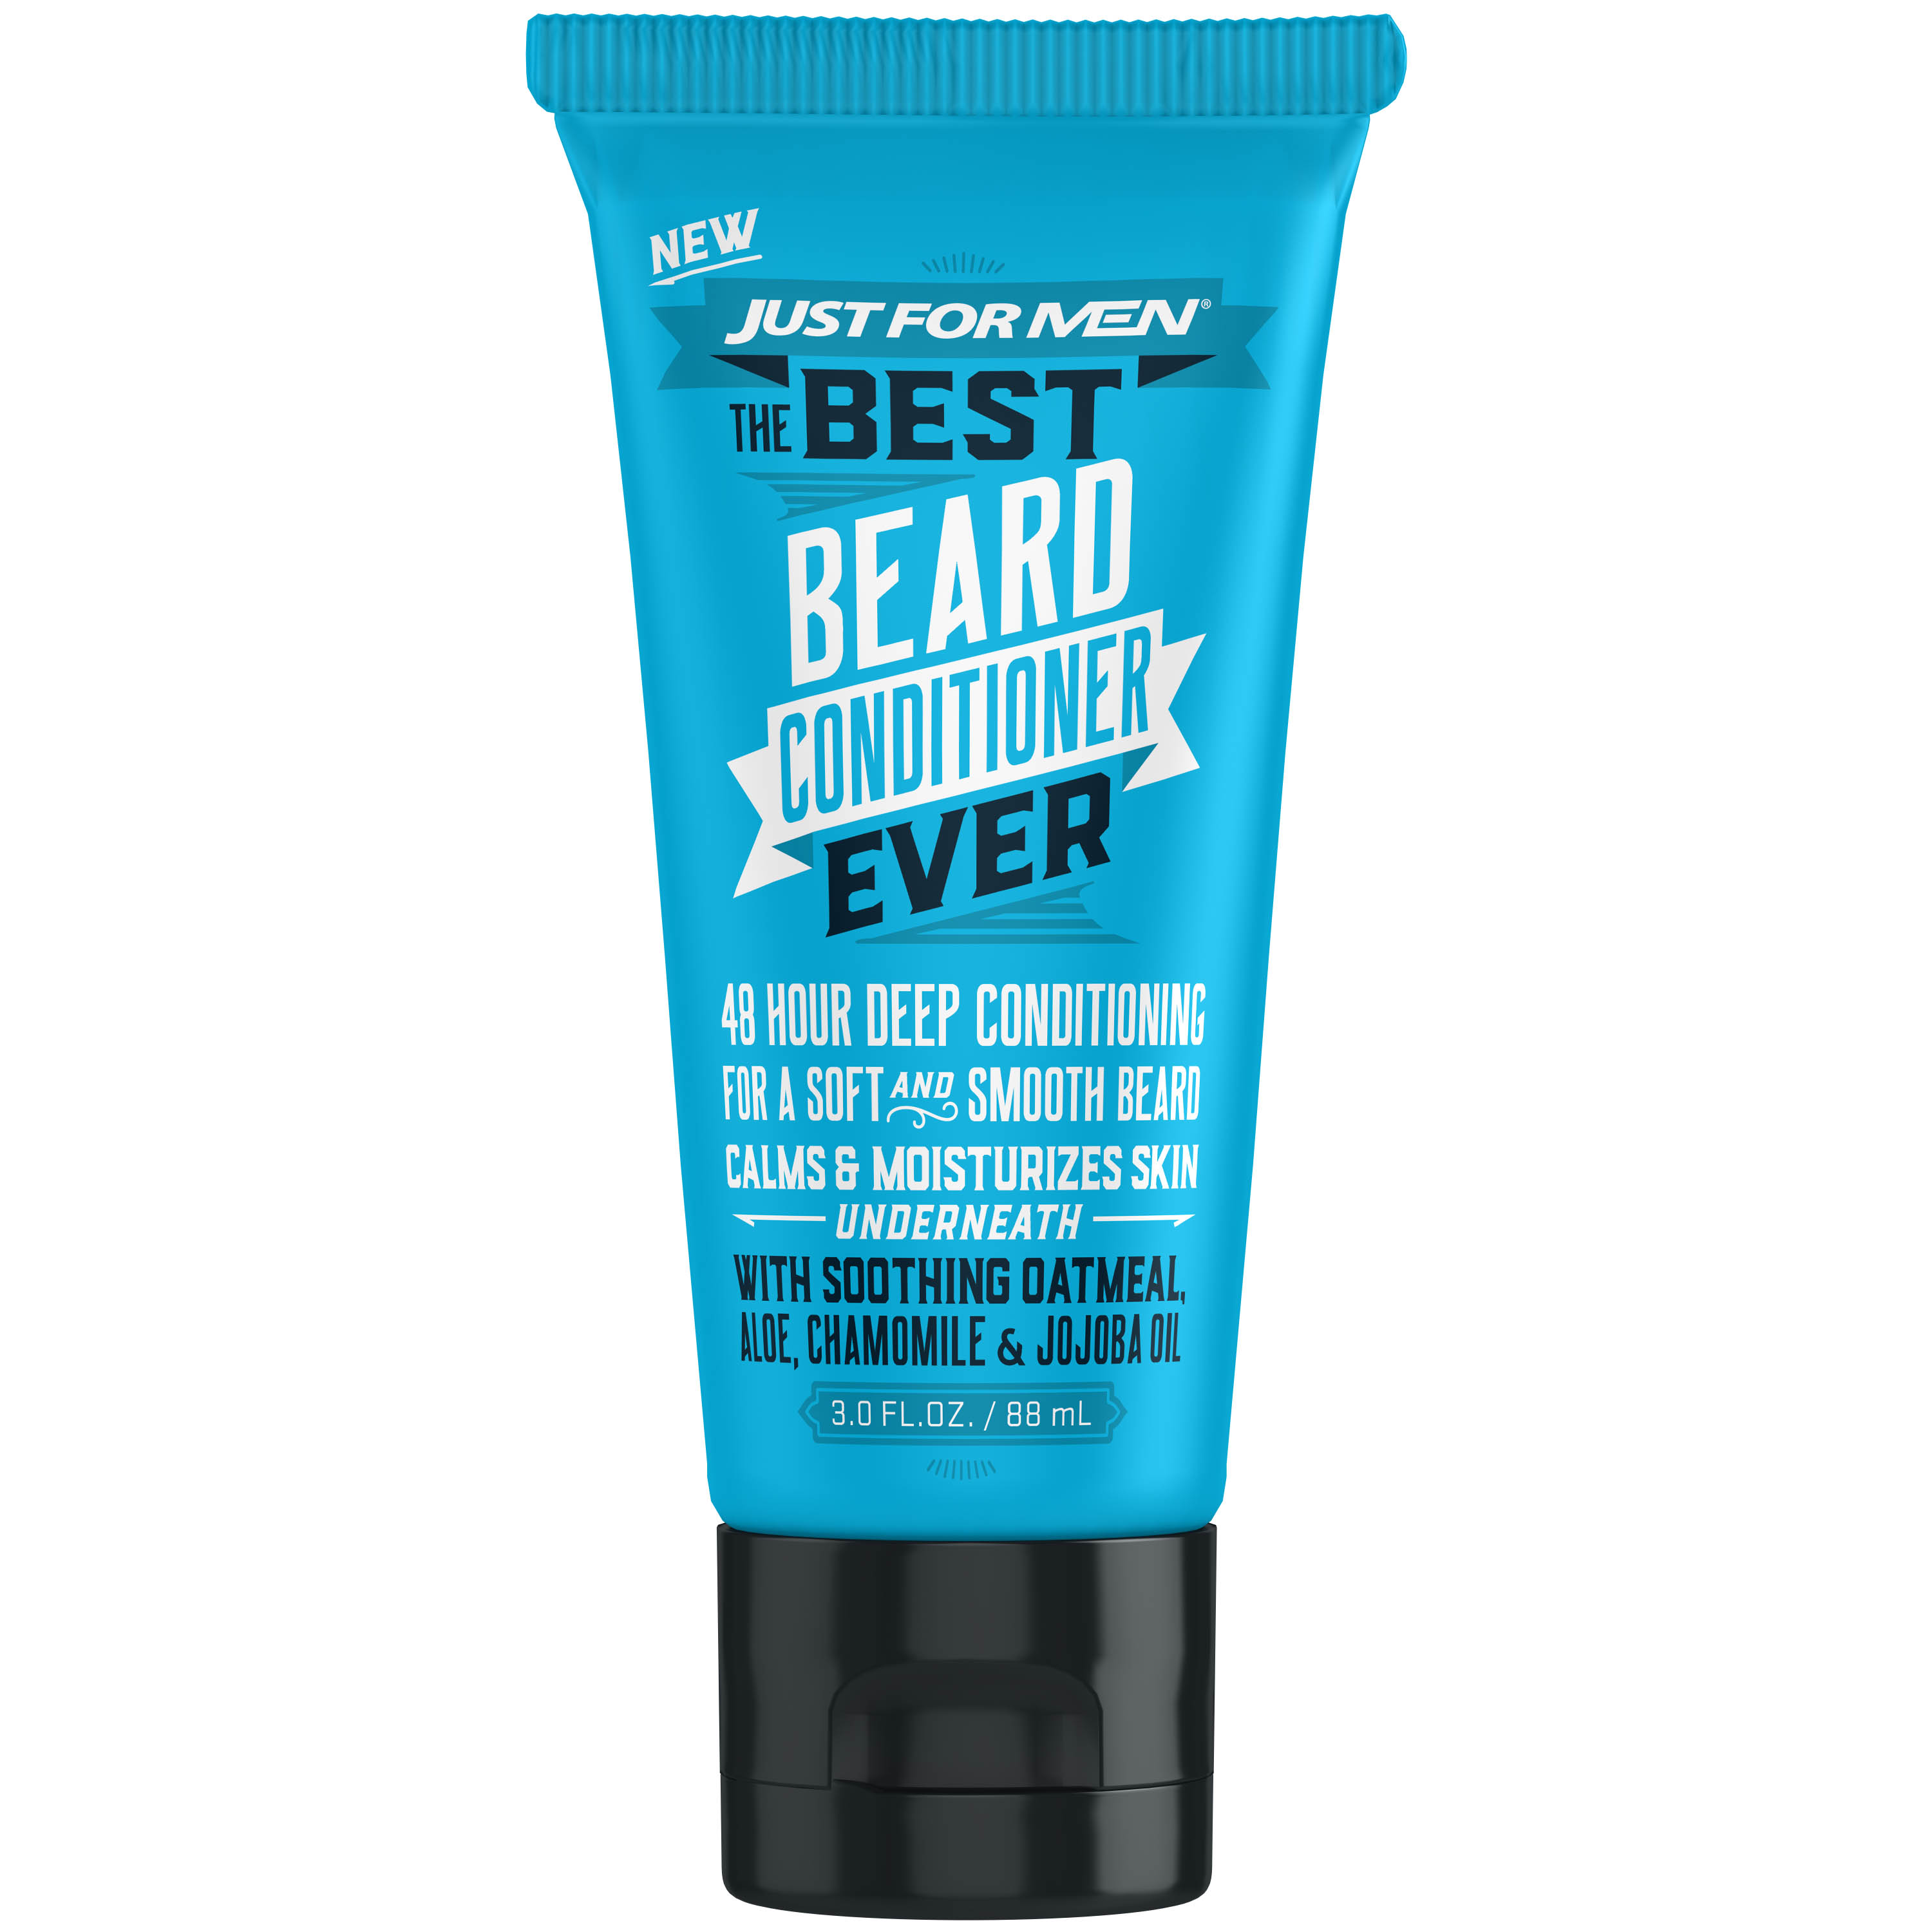 Just For Men, The Best Beard Conditioner Ever, For a Soft and Smooth Beard, 3 Fluid Ounce (88 mL)